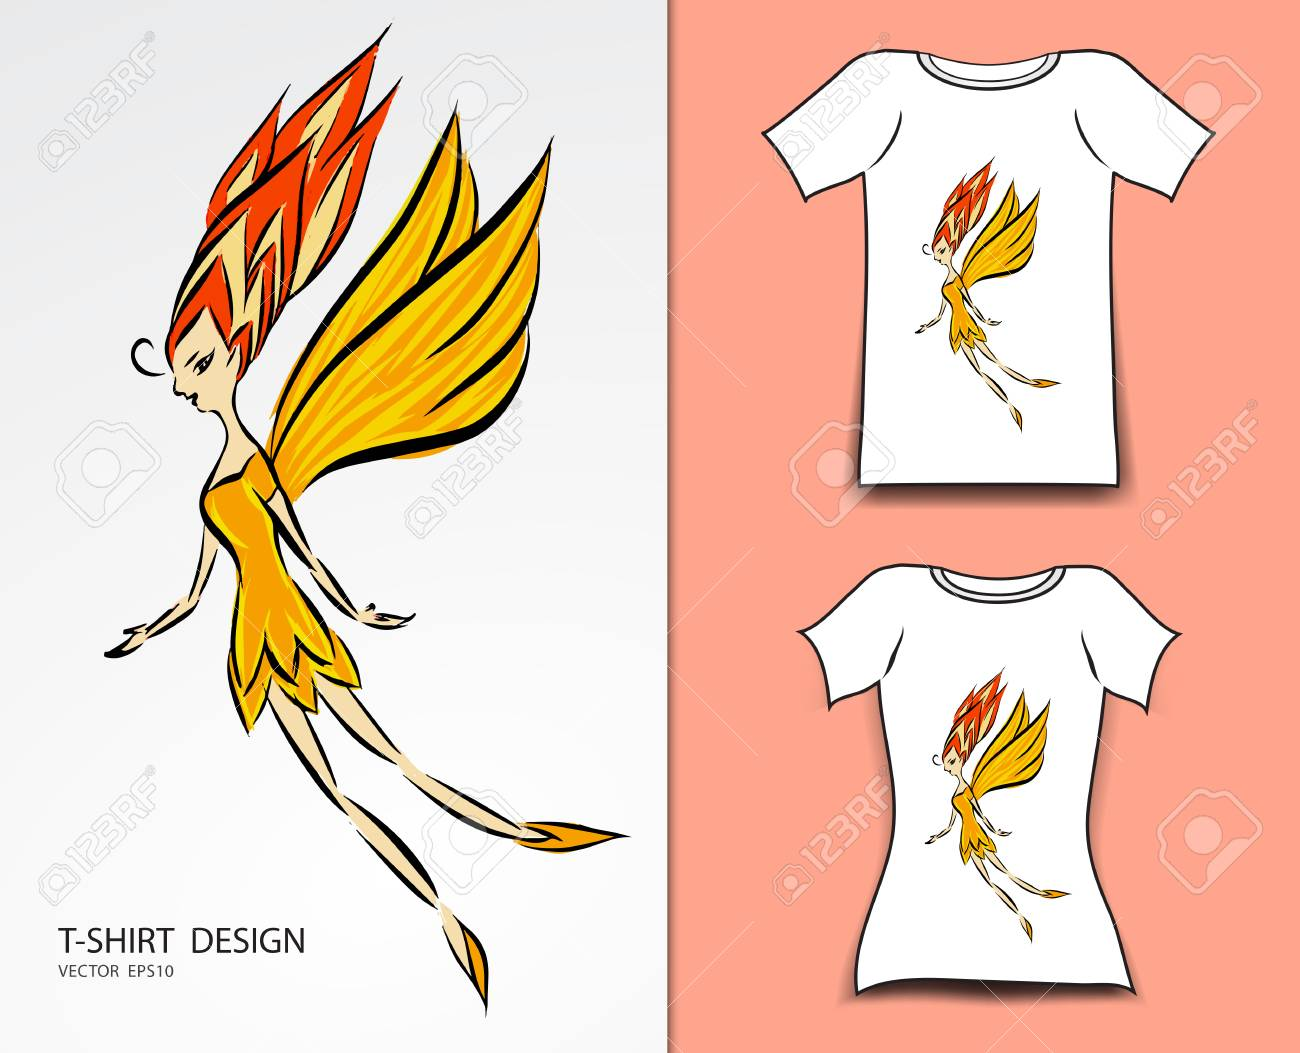 T Shirt Design Vector Illustration Cute Little Fairy Cartoon Royalty Free Cliparts Vectors And Stock Illustration Image 93366925